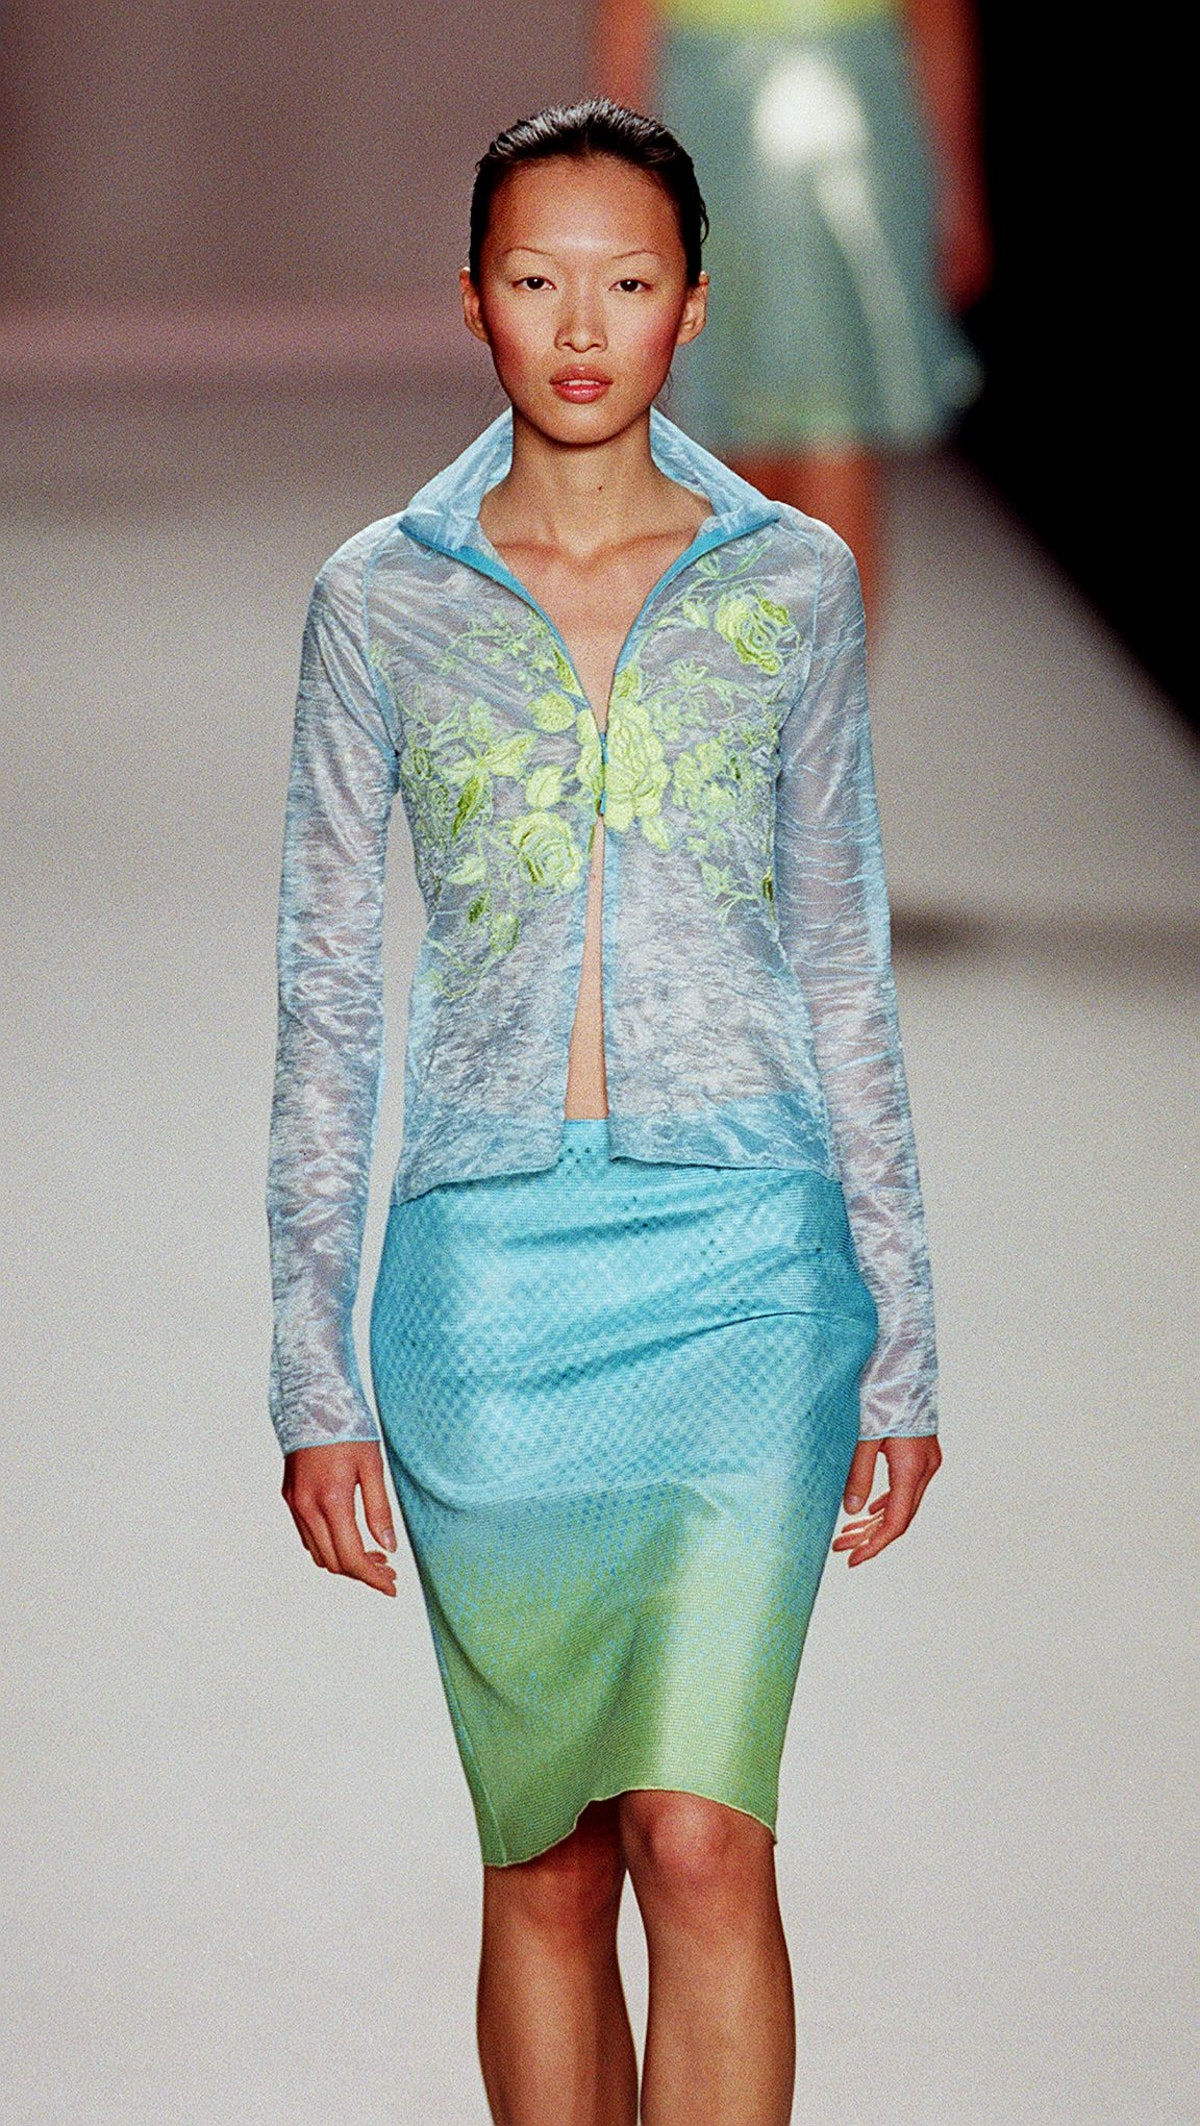 A model wears a print chiffon blouse over a turquo